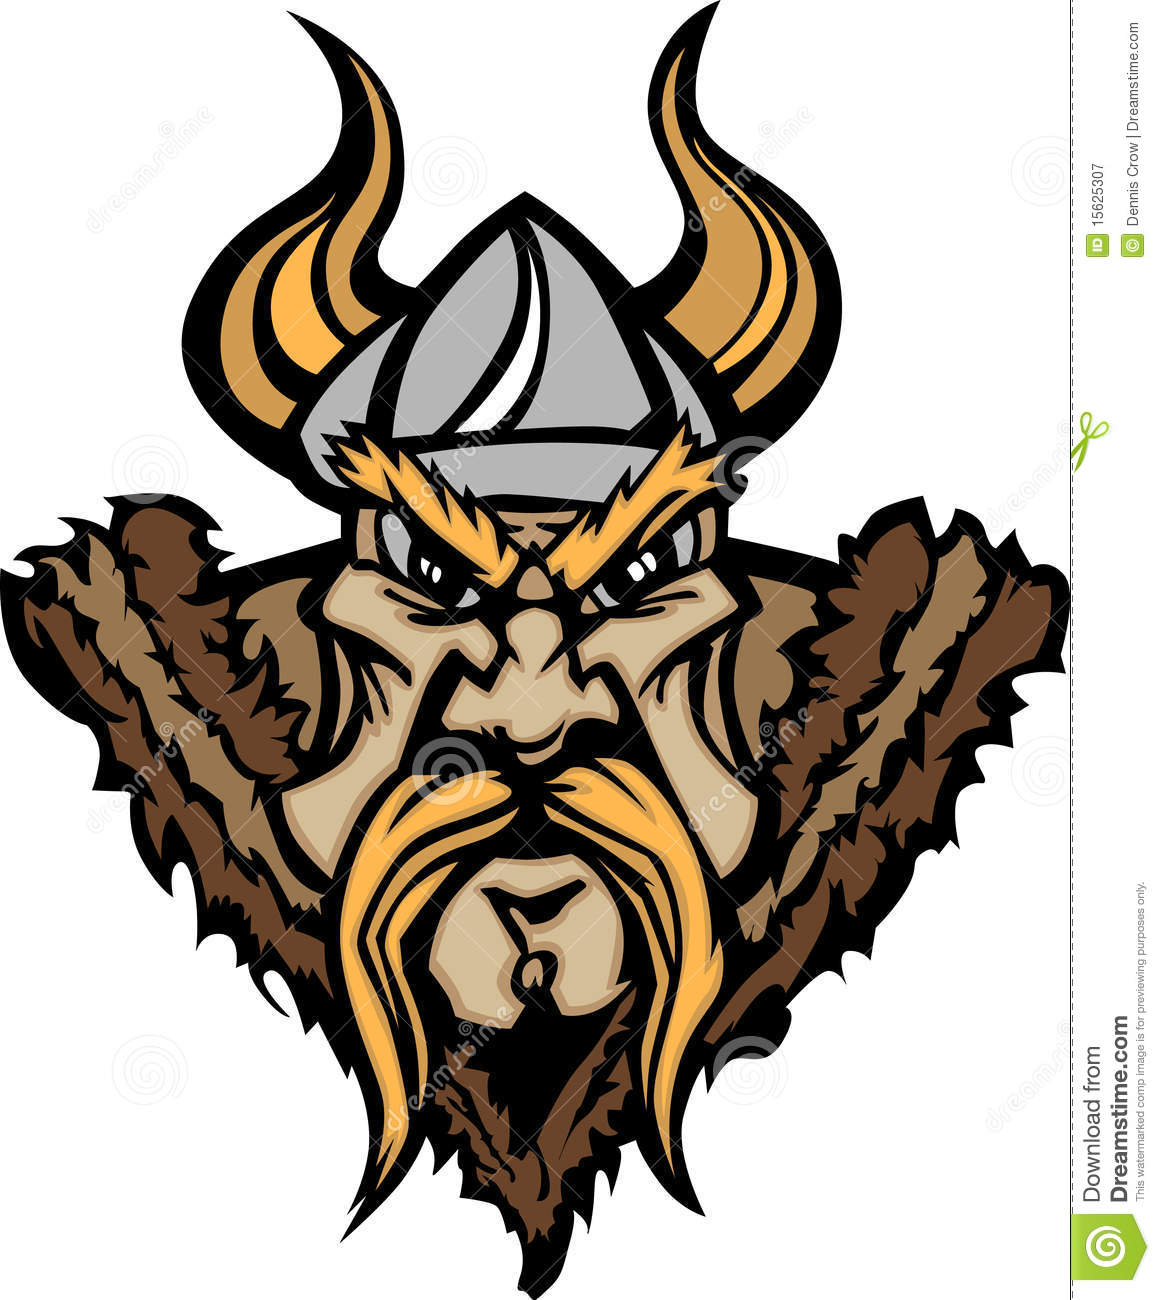 Viking Stock Photos and Images 11348 Viking pictures and